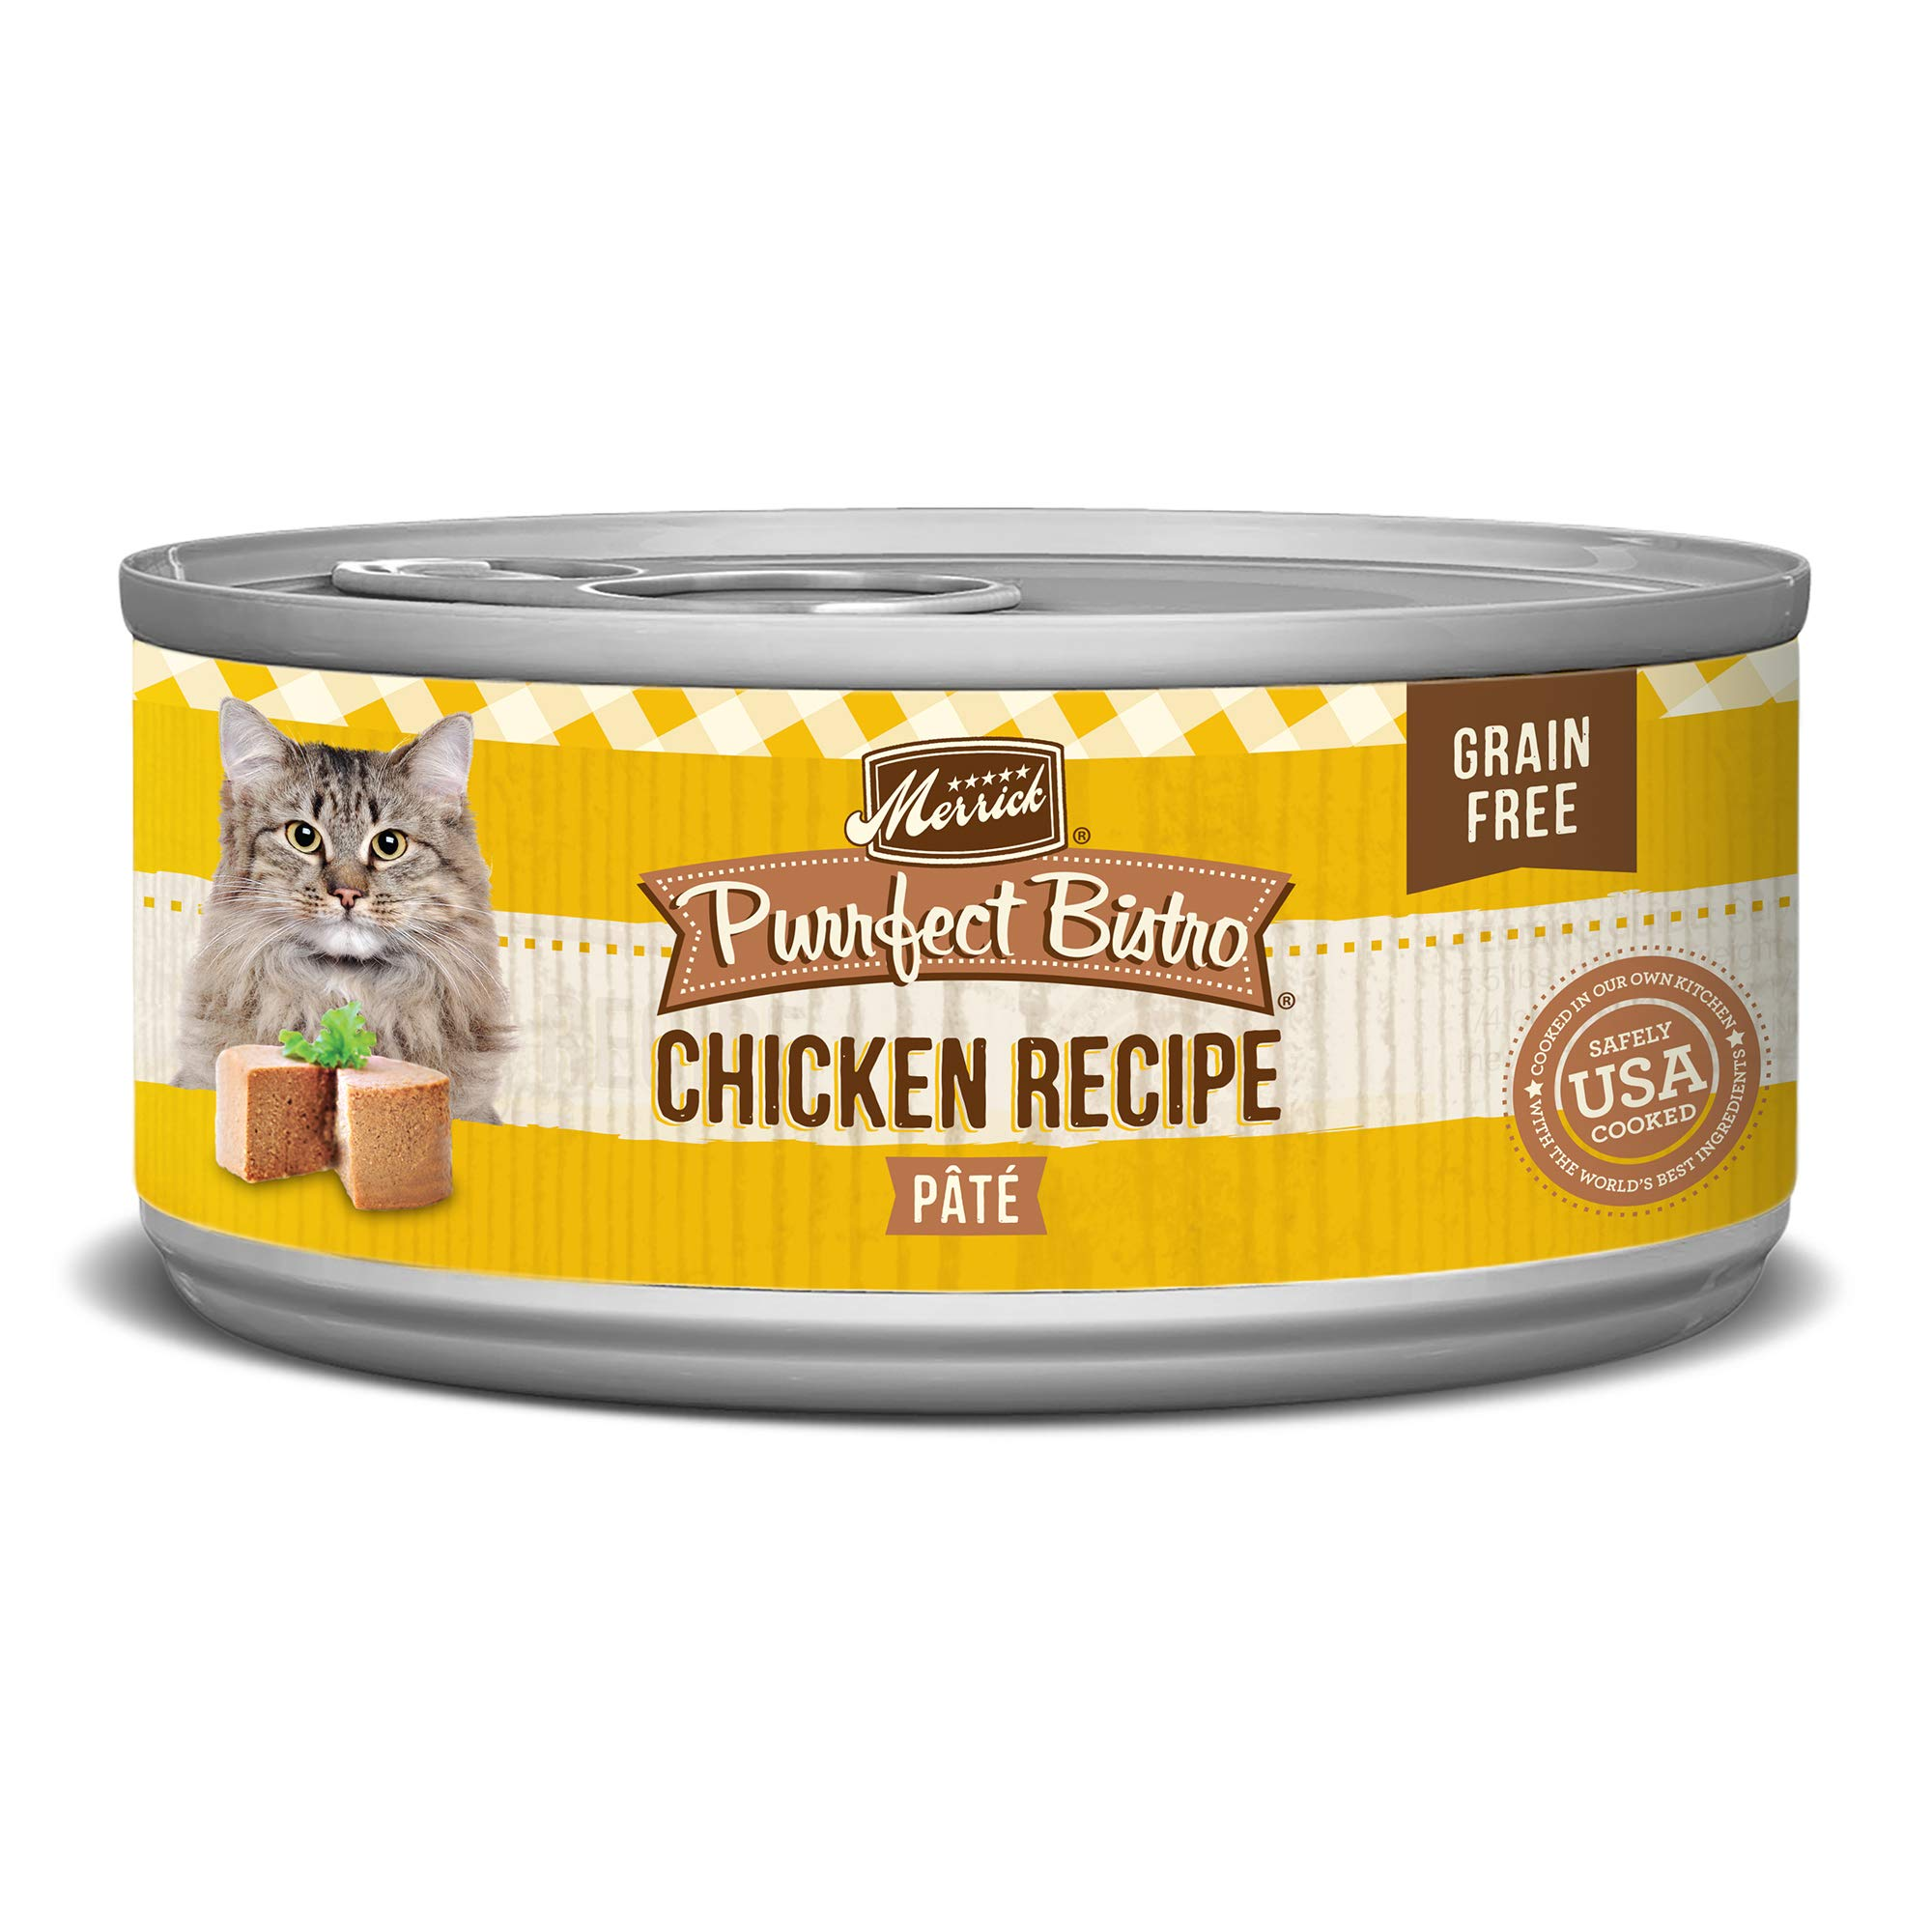 Merrick Purrfect Bistro Grain Free, 5.5 oz, Chicken Pate - Pack of 24  by Merrick